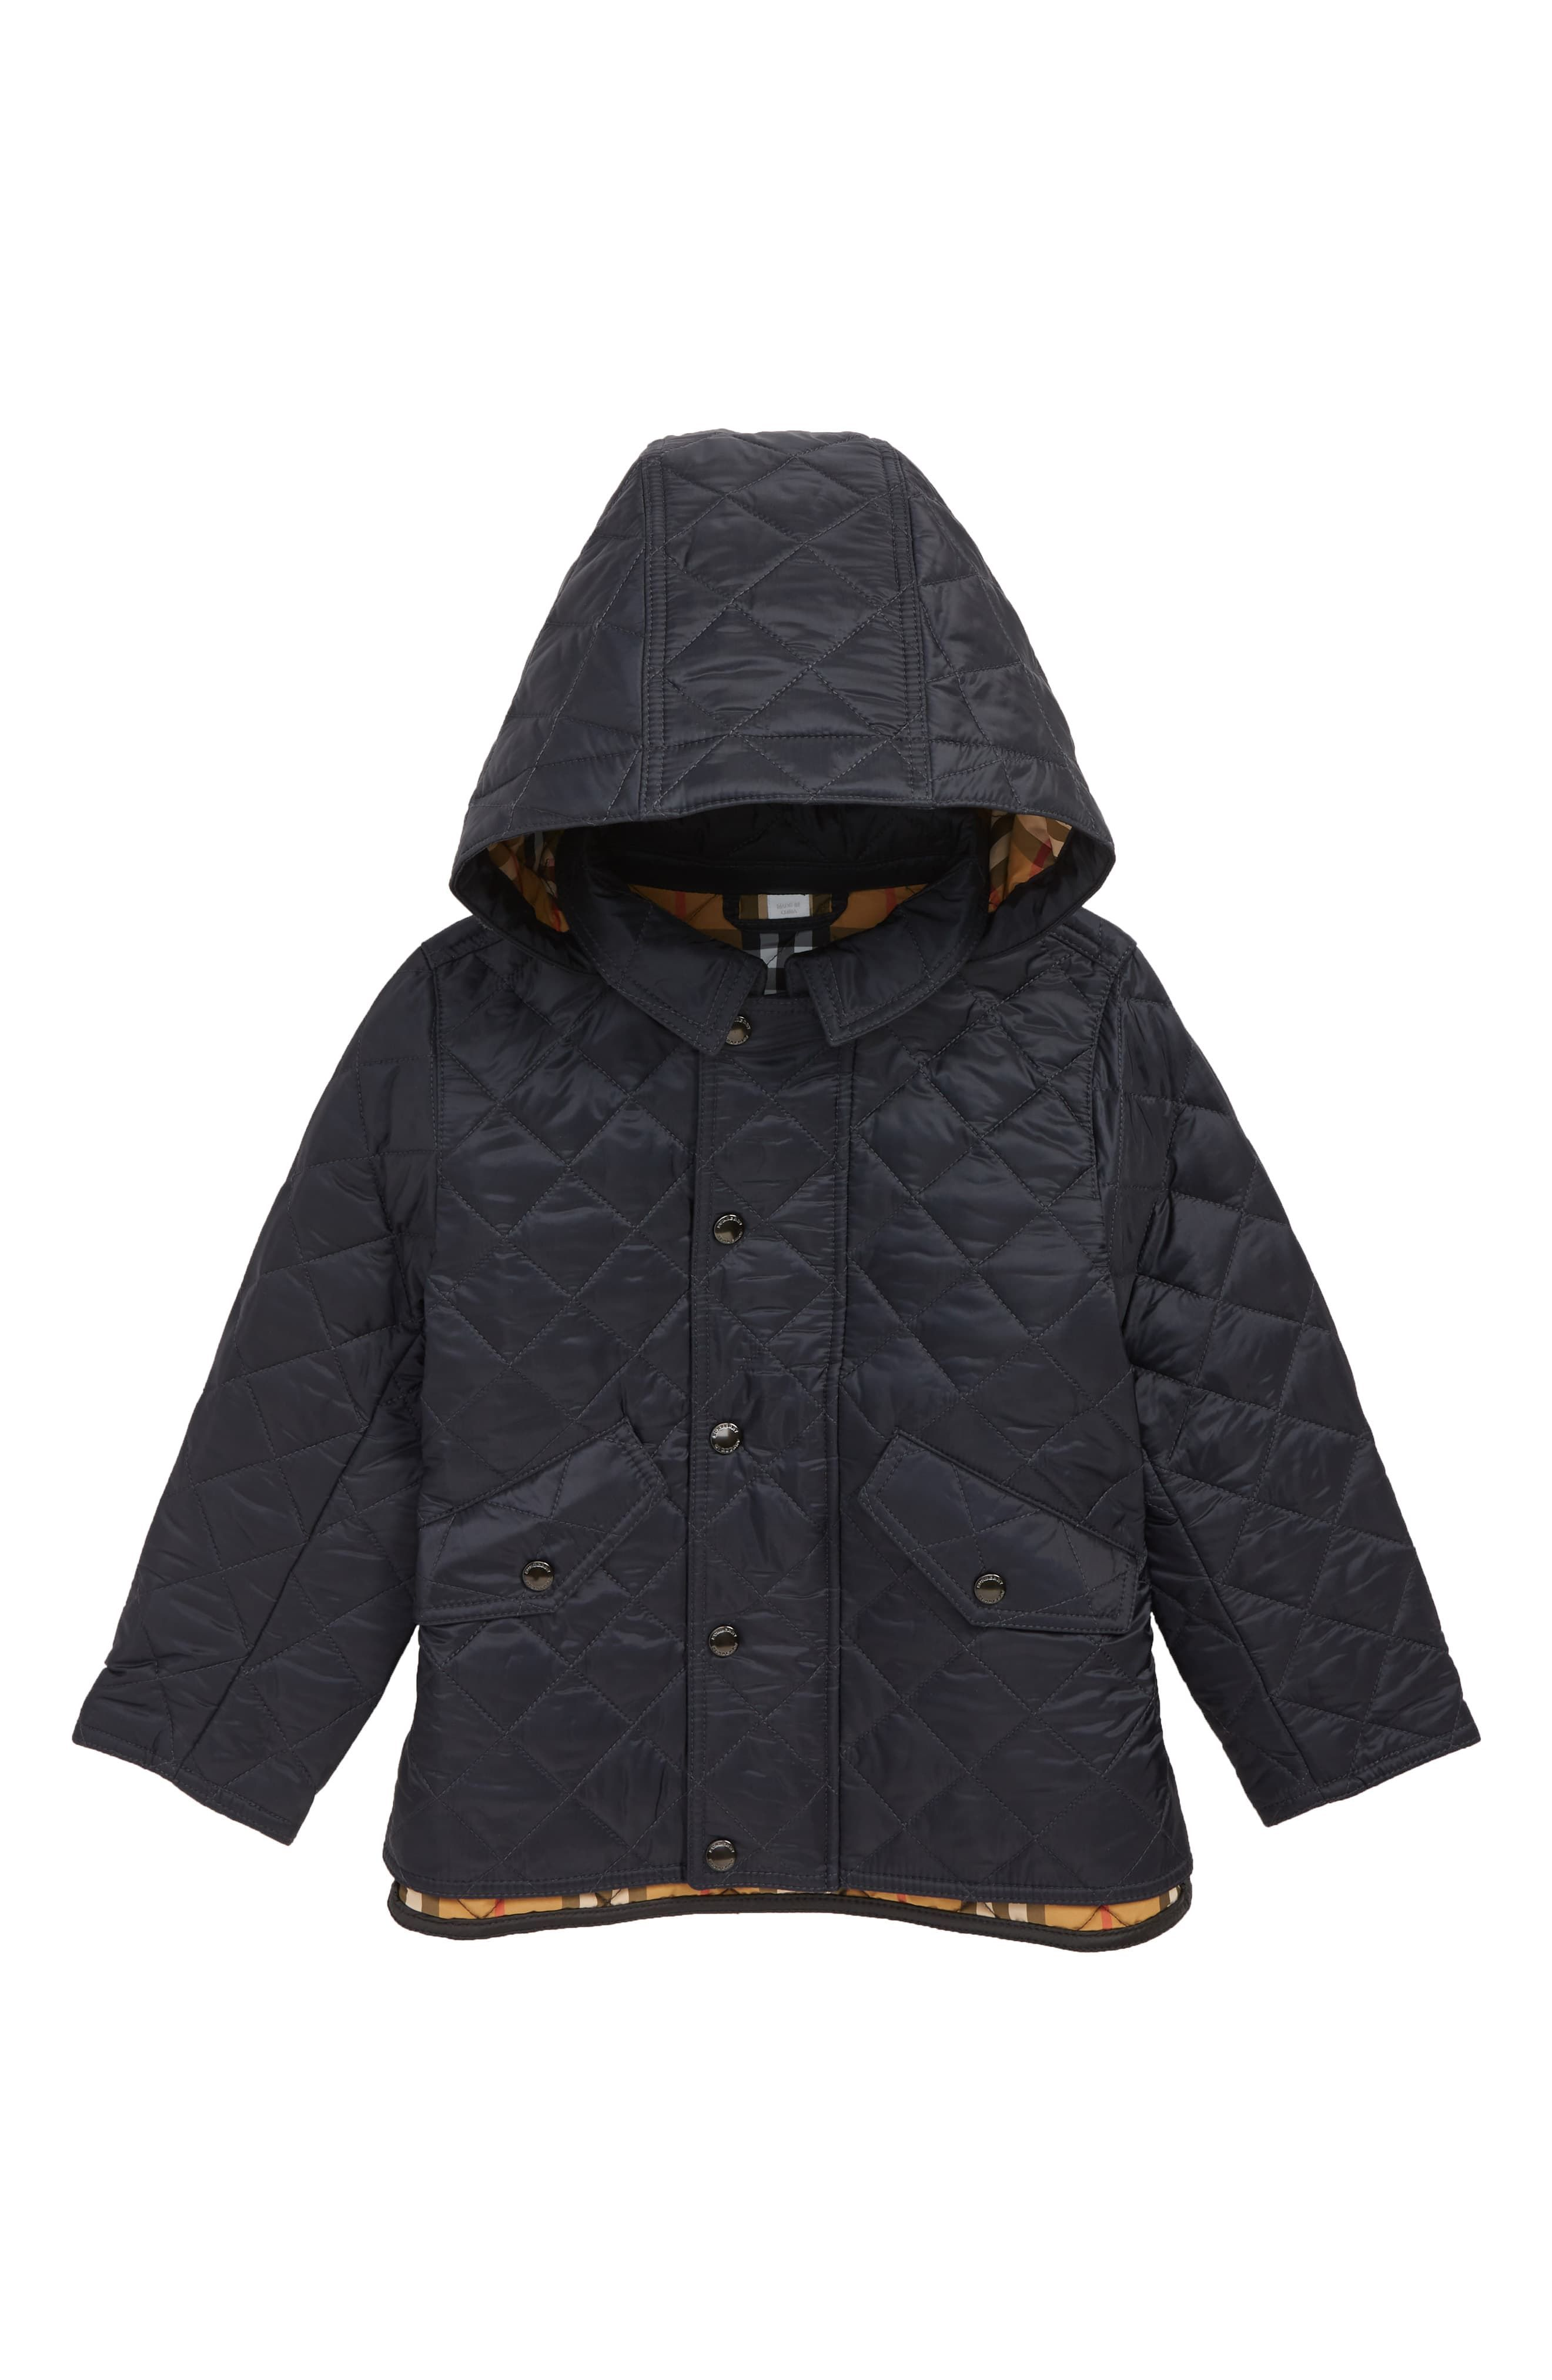 Toddler Boy S Burberry Ilana Quilted Water Repellent Jacket Size 2t Blue Water Repellent Jacket Jackets Boy Outfits